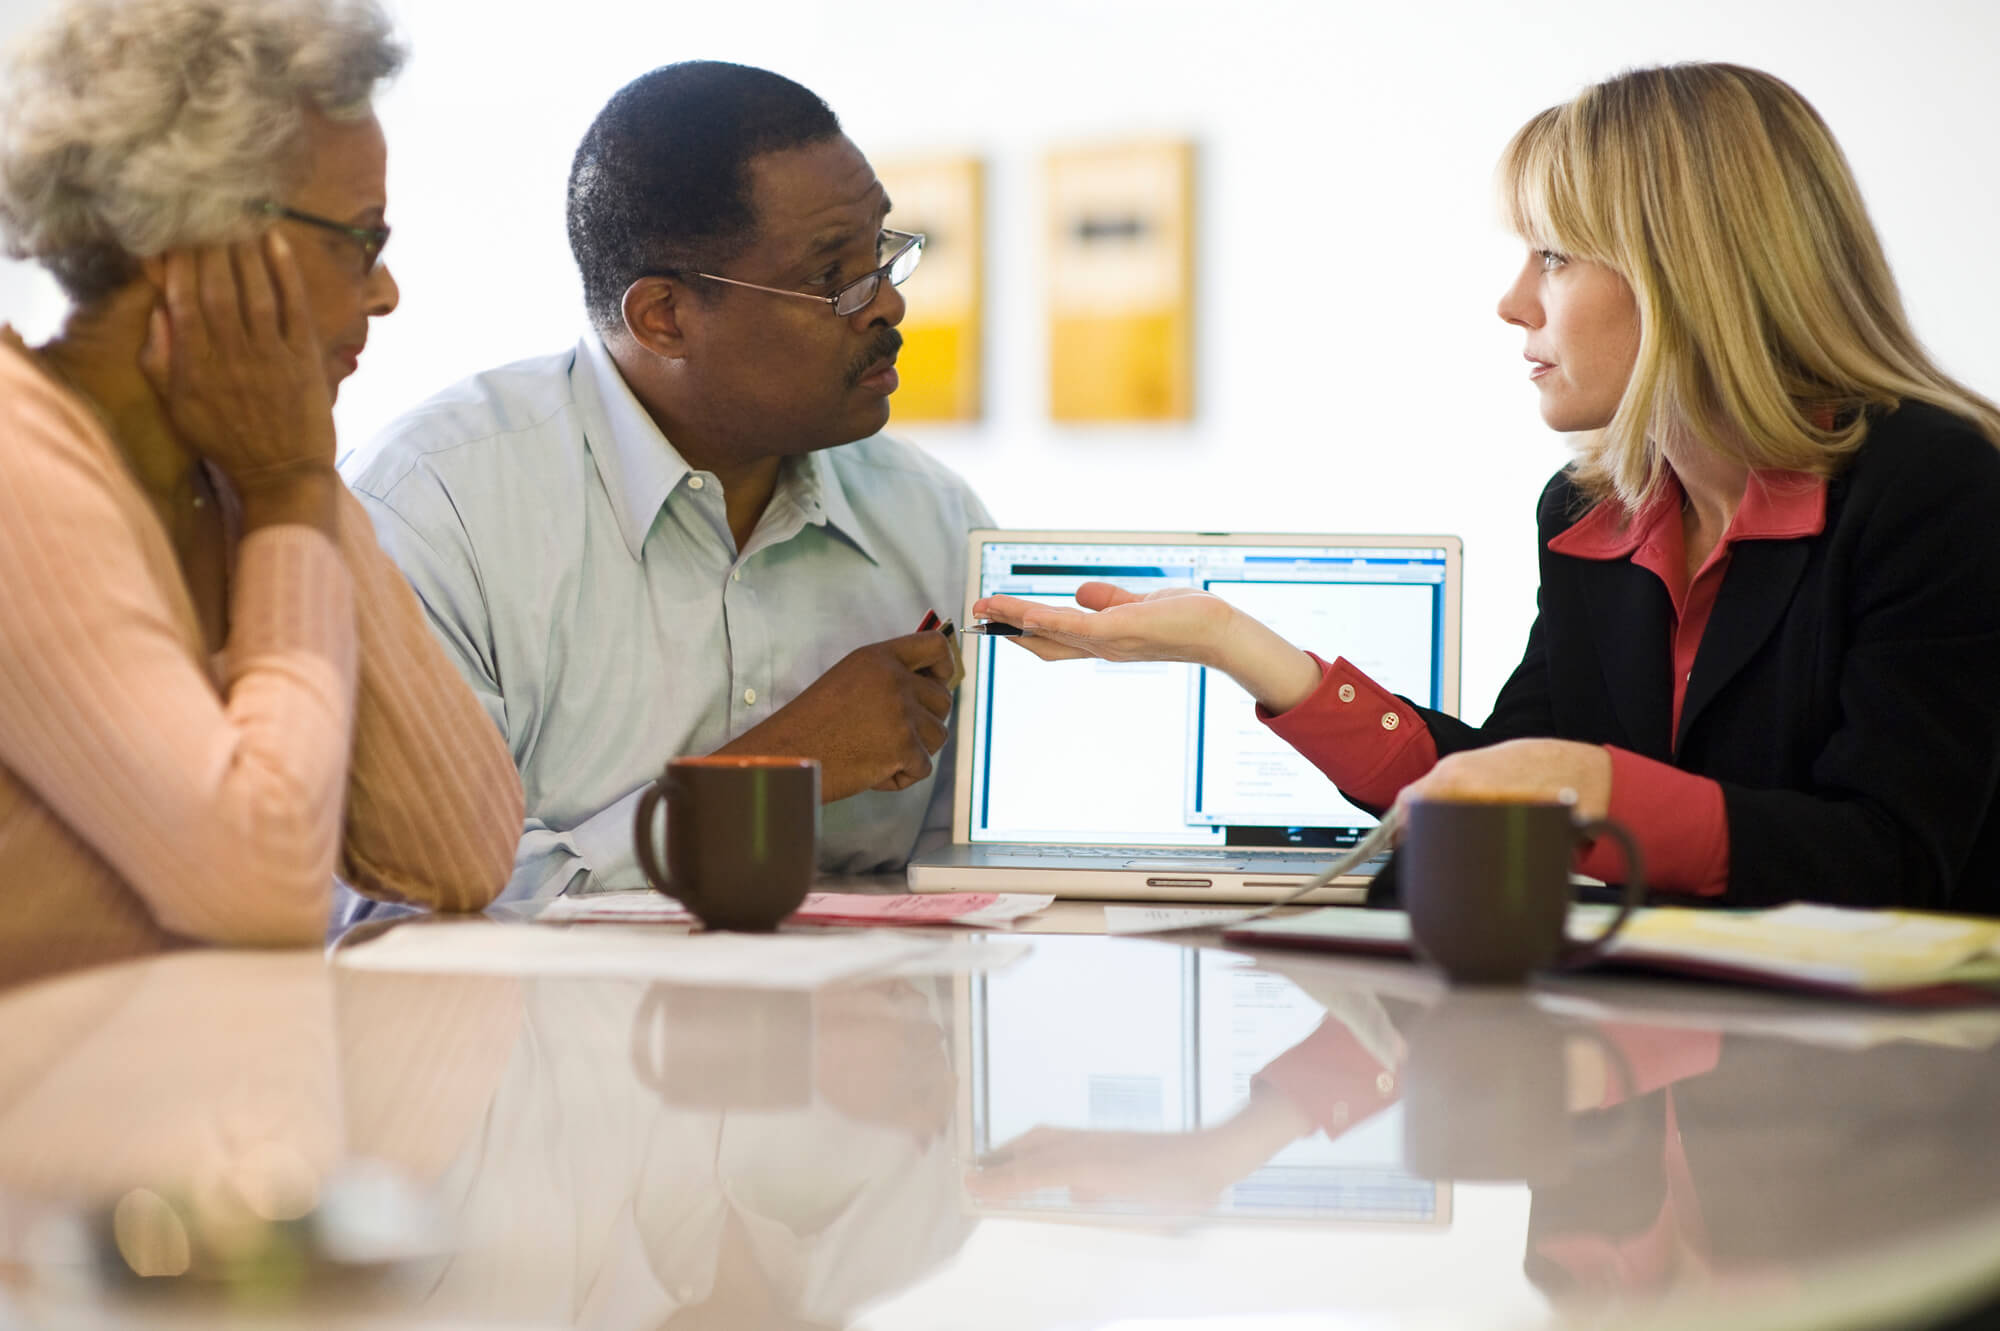 Personal Financing Strategist in West Palm Beach giving advice to an elderly couple